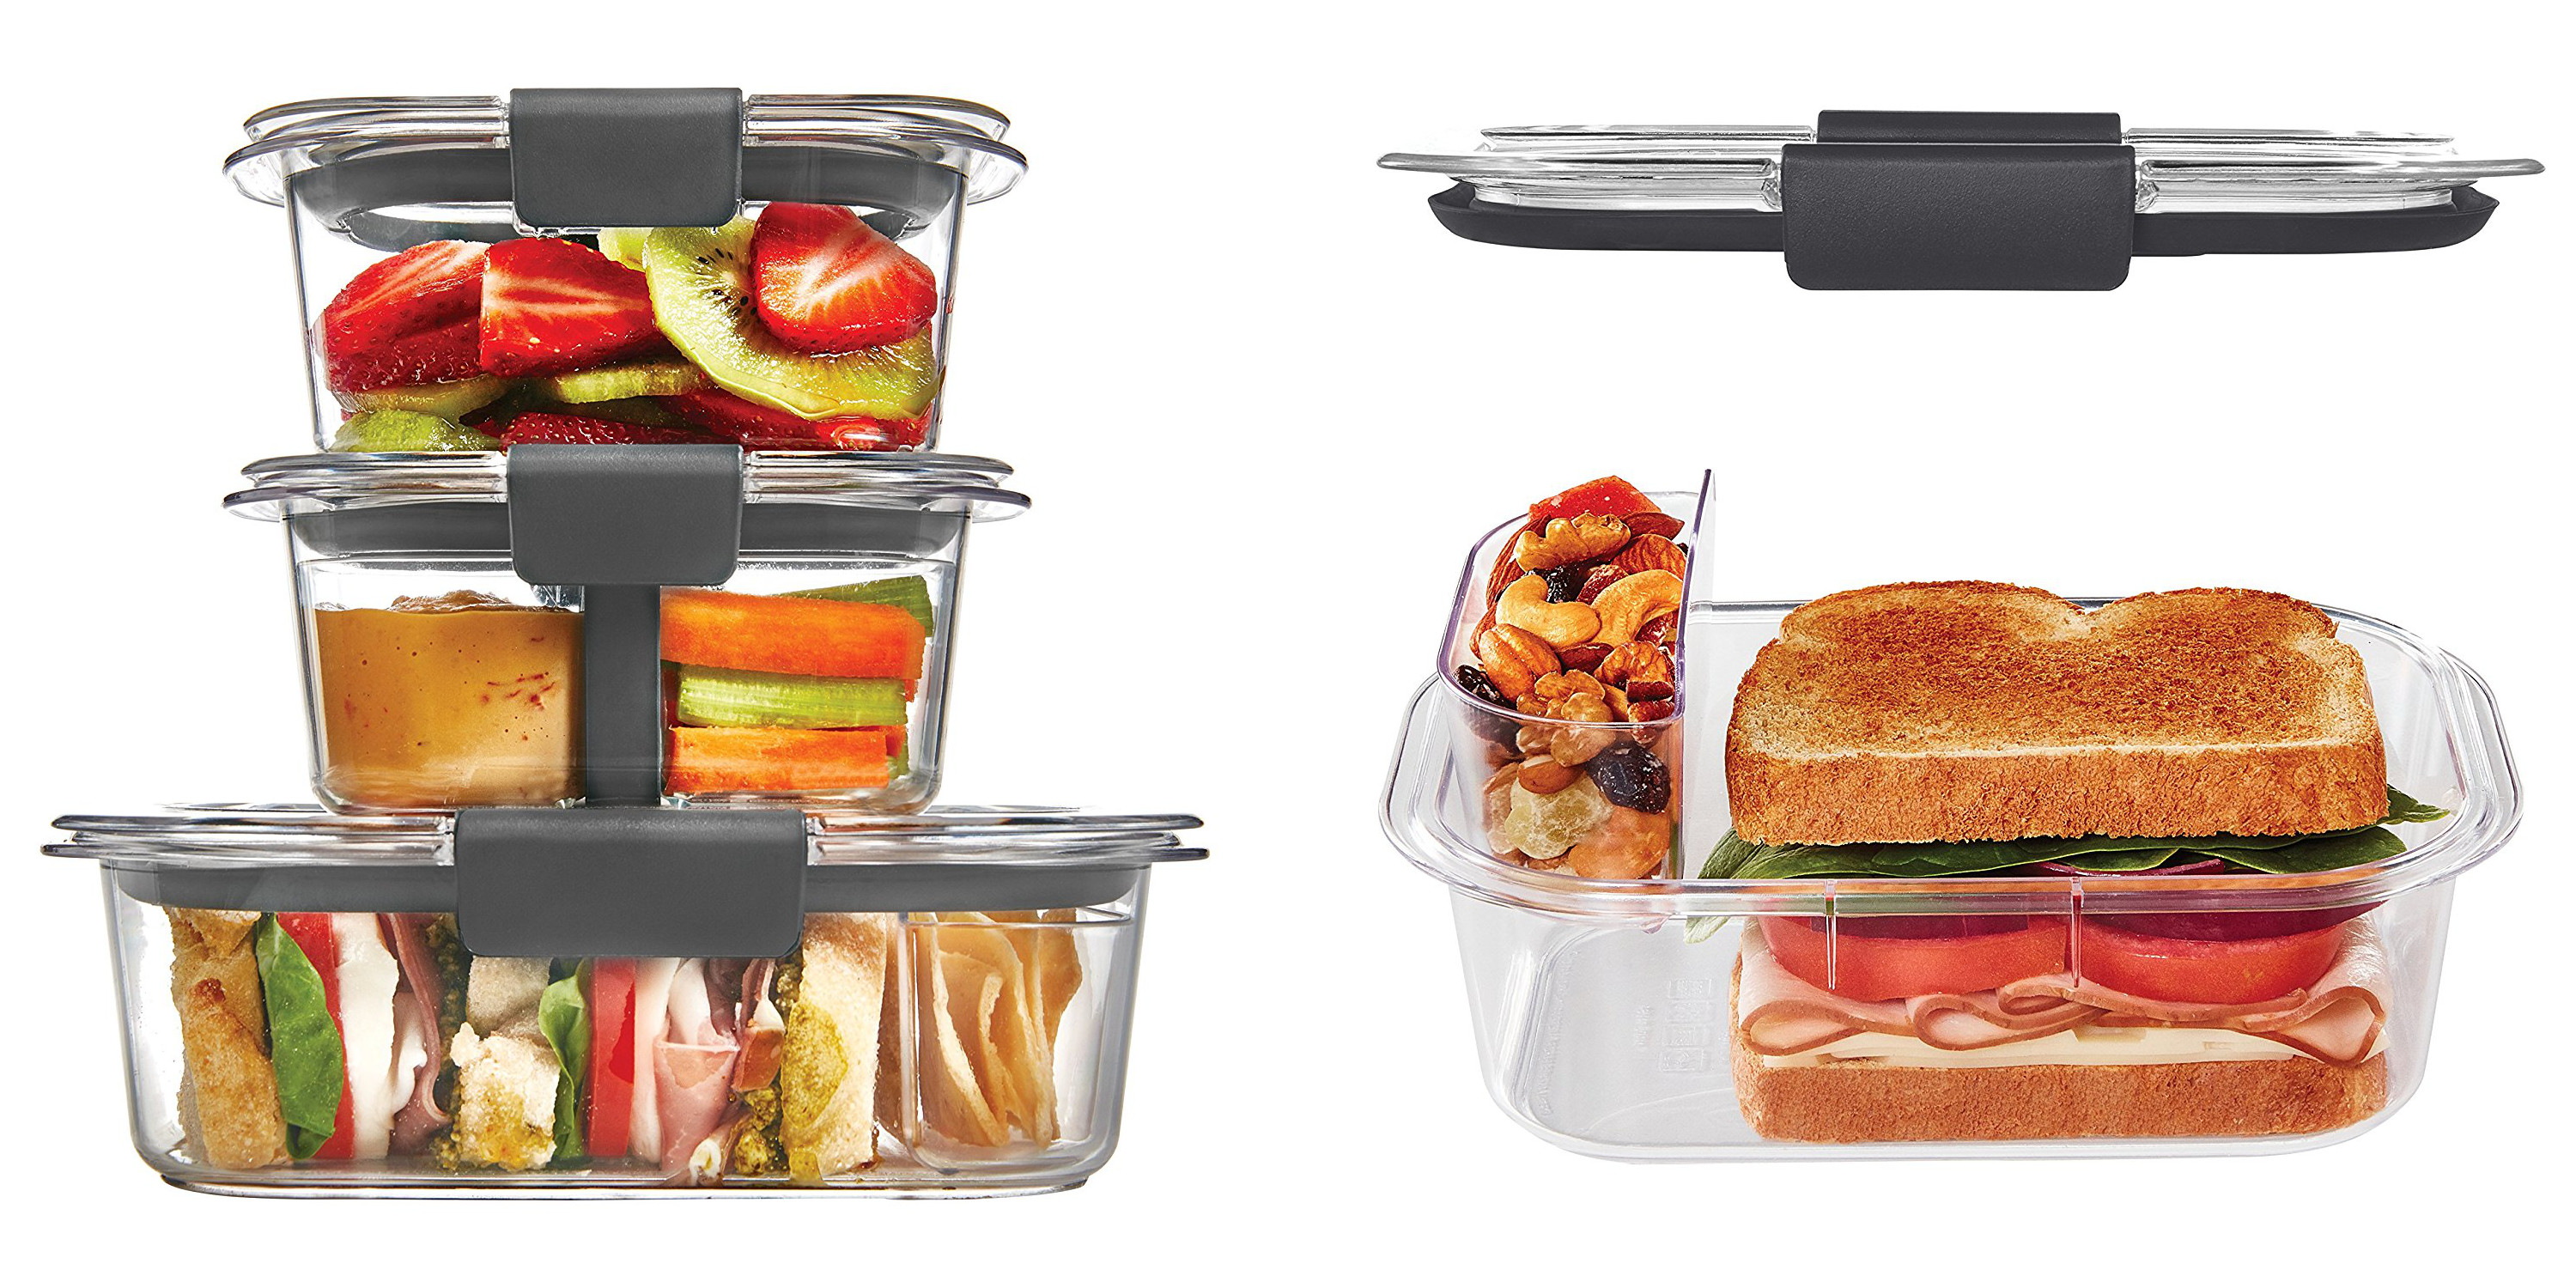 Rubbermaids Brilliance Lunch Container Kit drops to 14 Prime